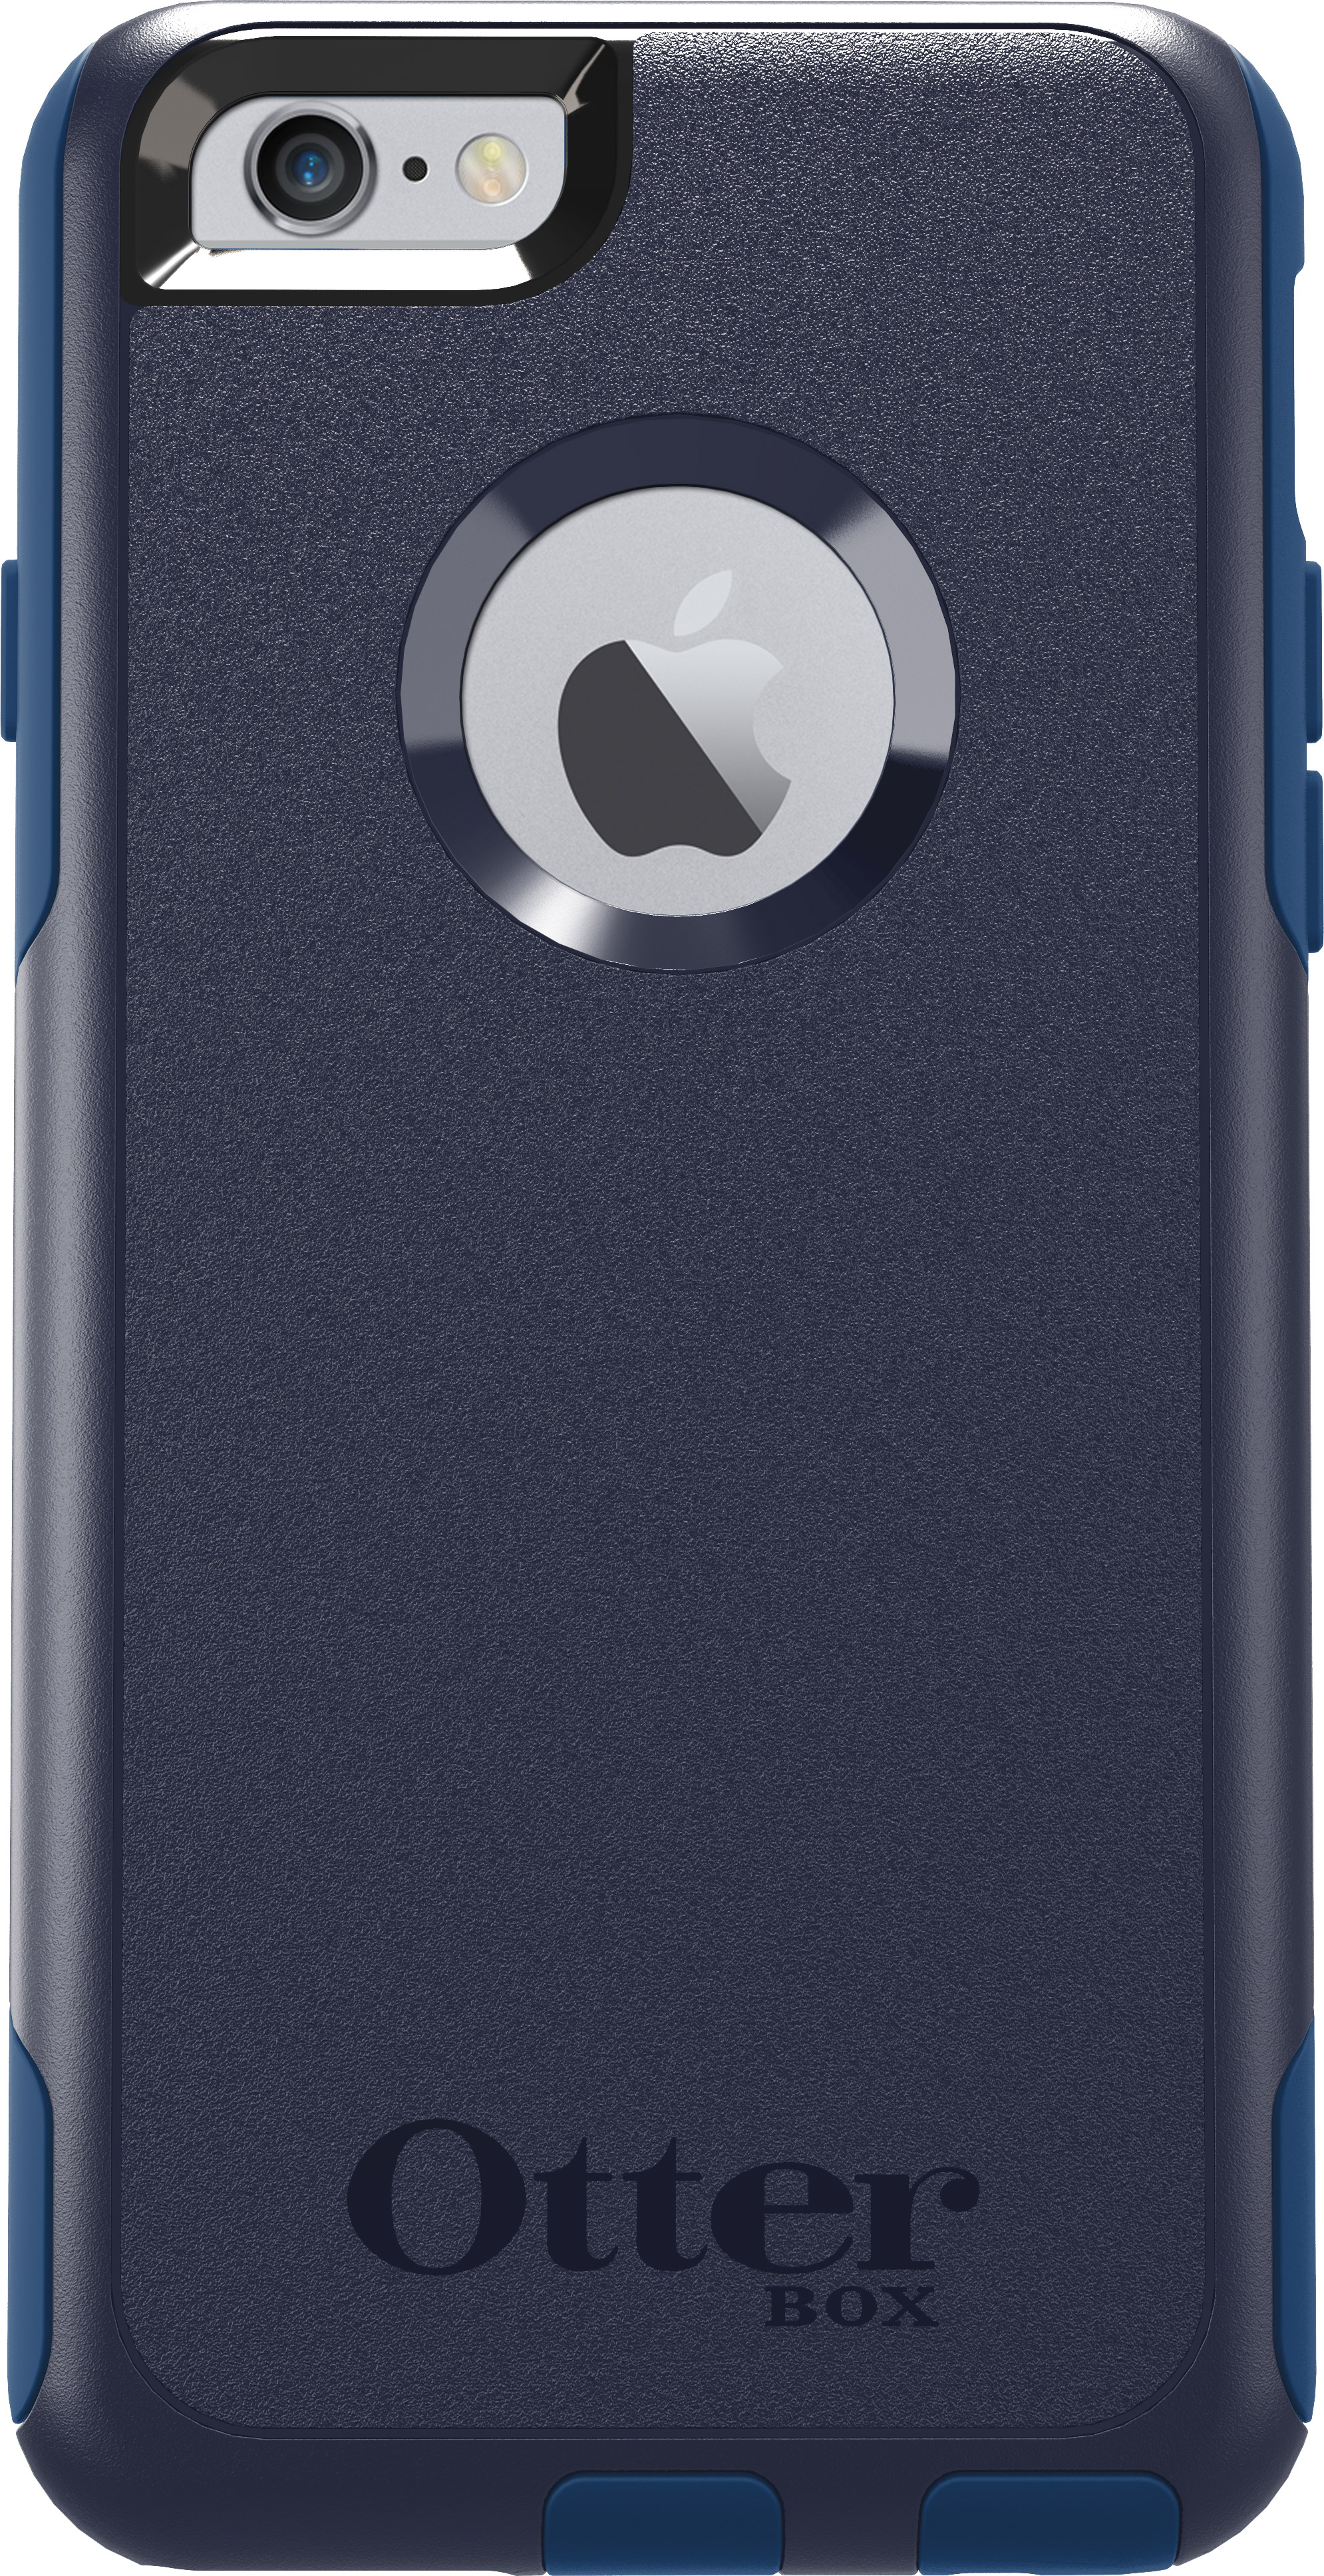 OtterBox Commuter Series Case for iPhone 6 Plus/6s Plus